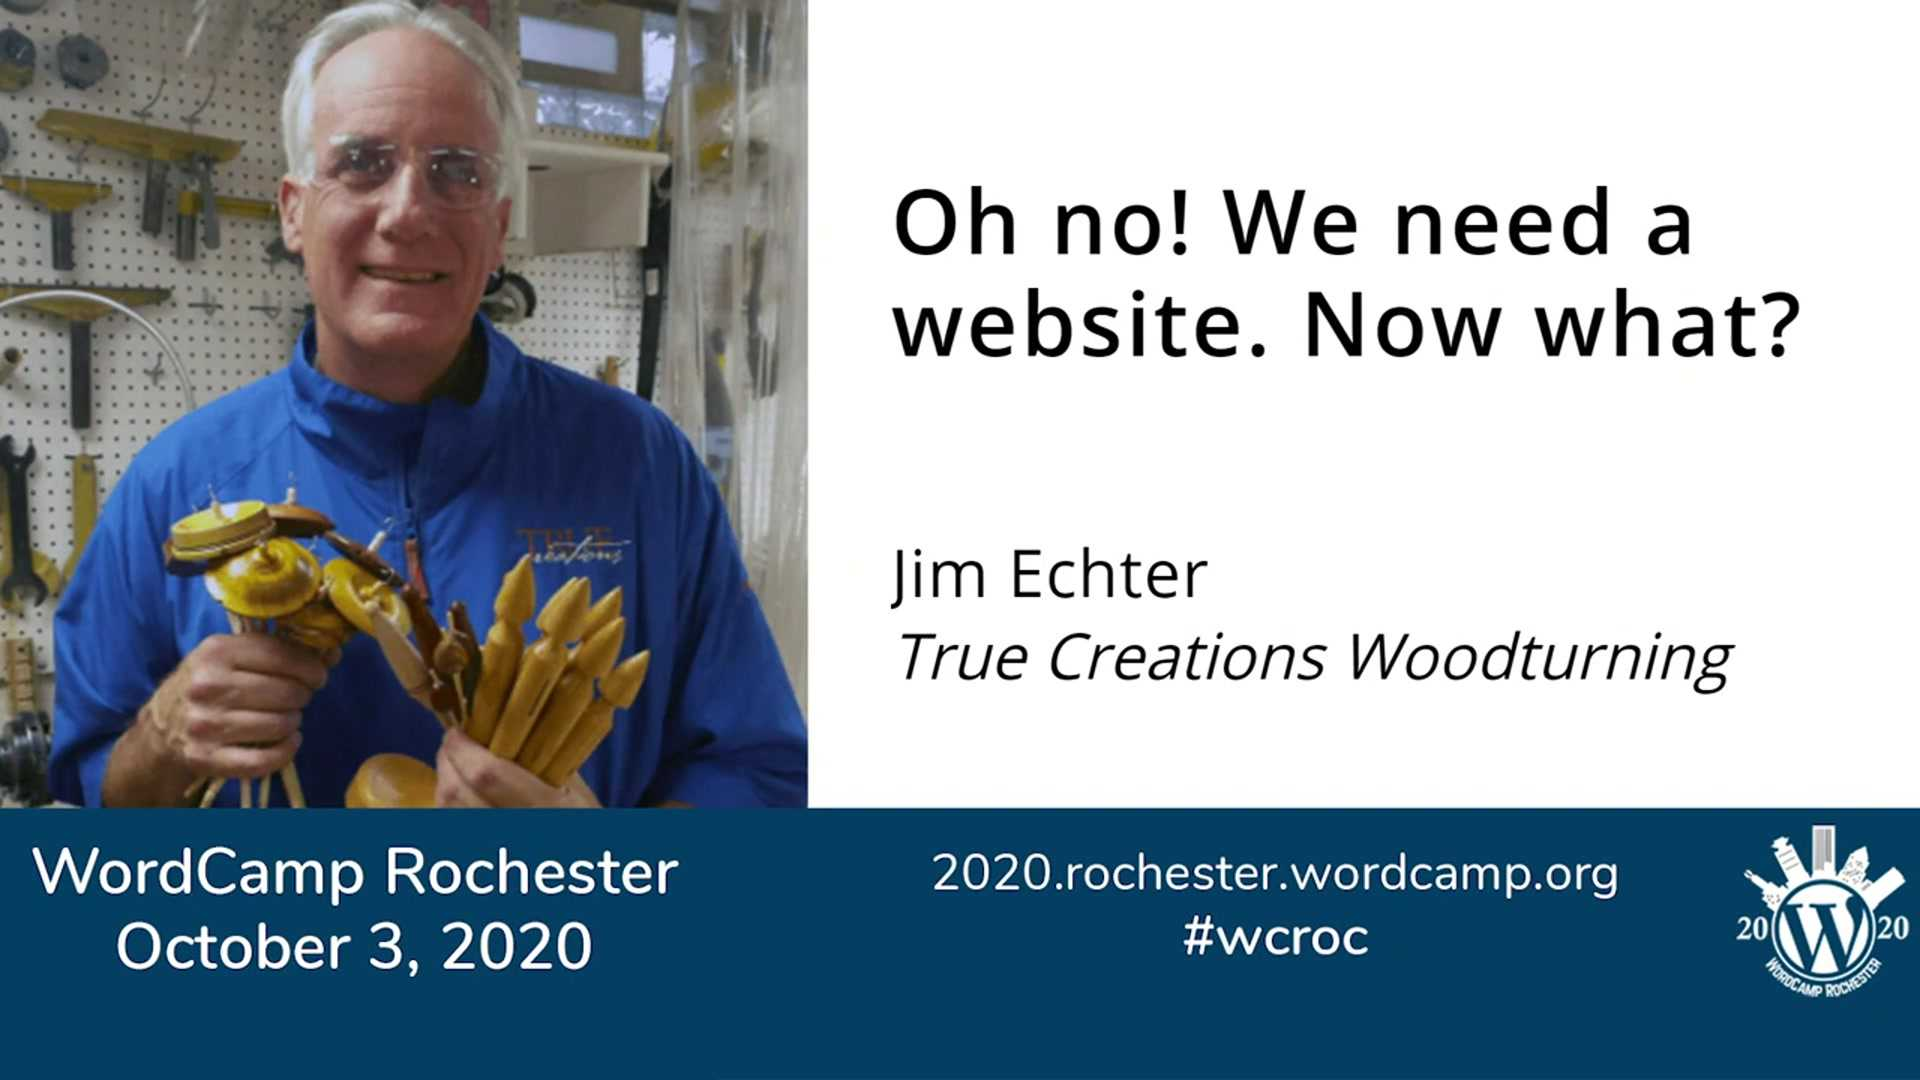 Jim Echter: Oh no! We need a website. Now what?